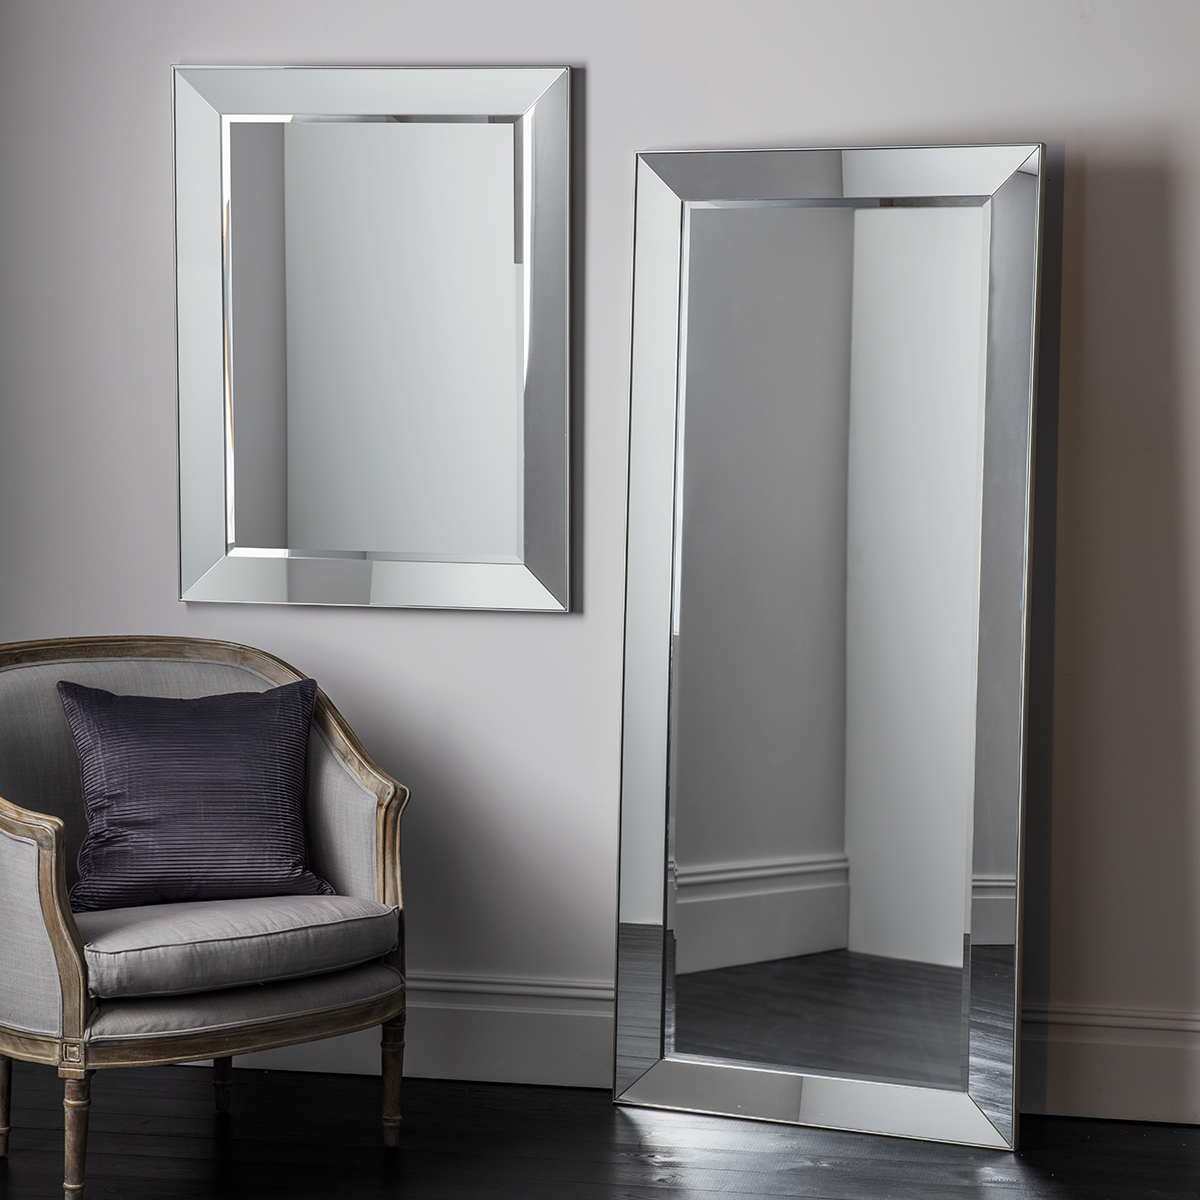 3x5 Mirror | Oversized Mirrors | Cheap Oversized Wall Mirrors